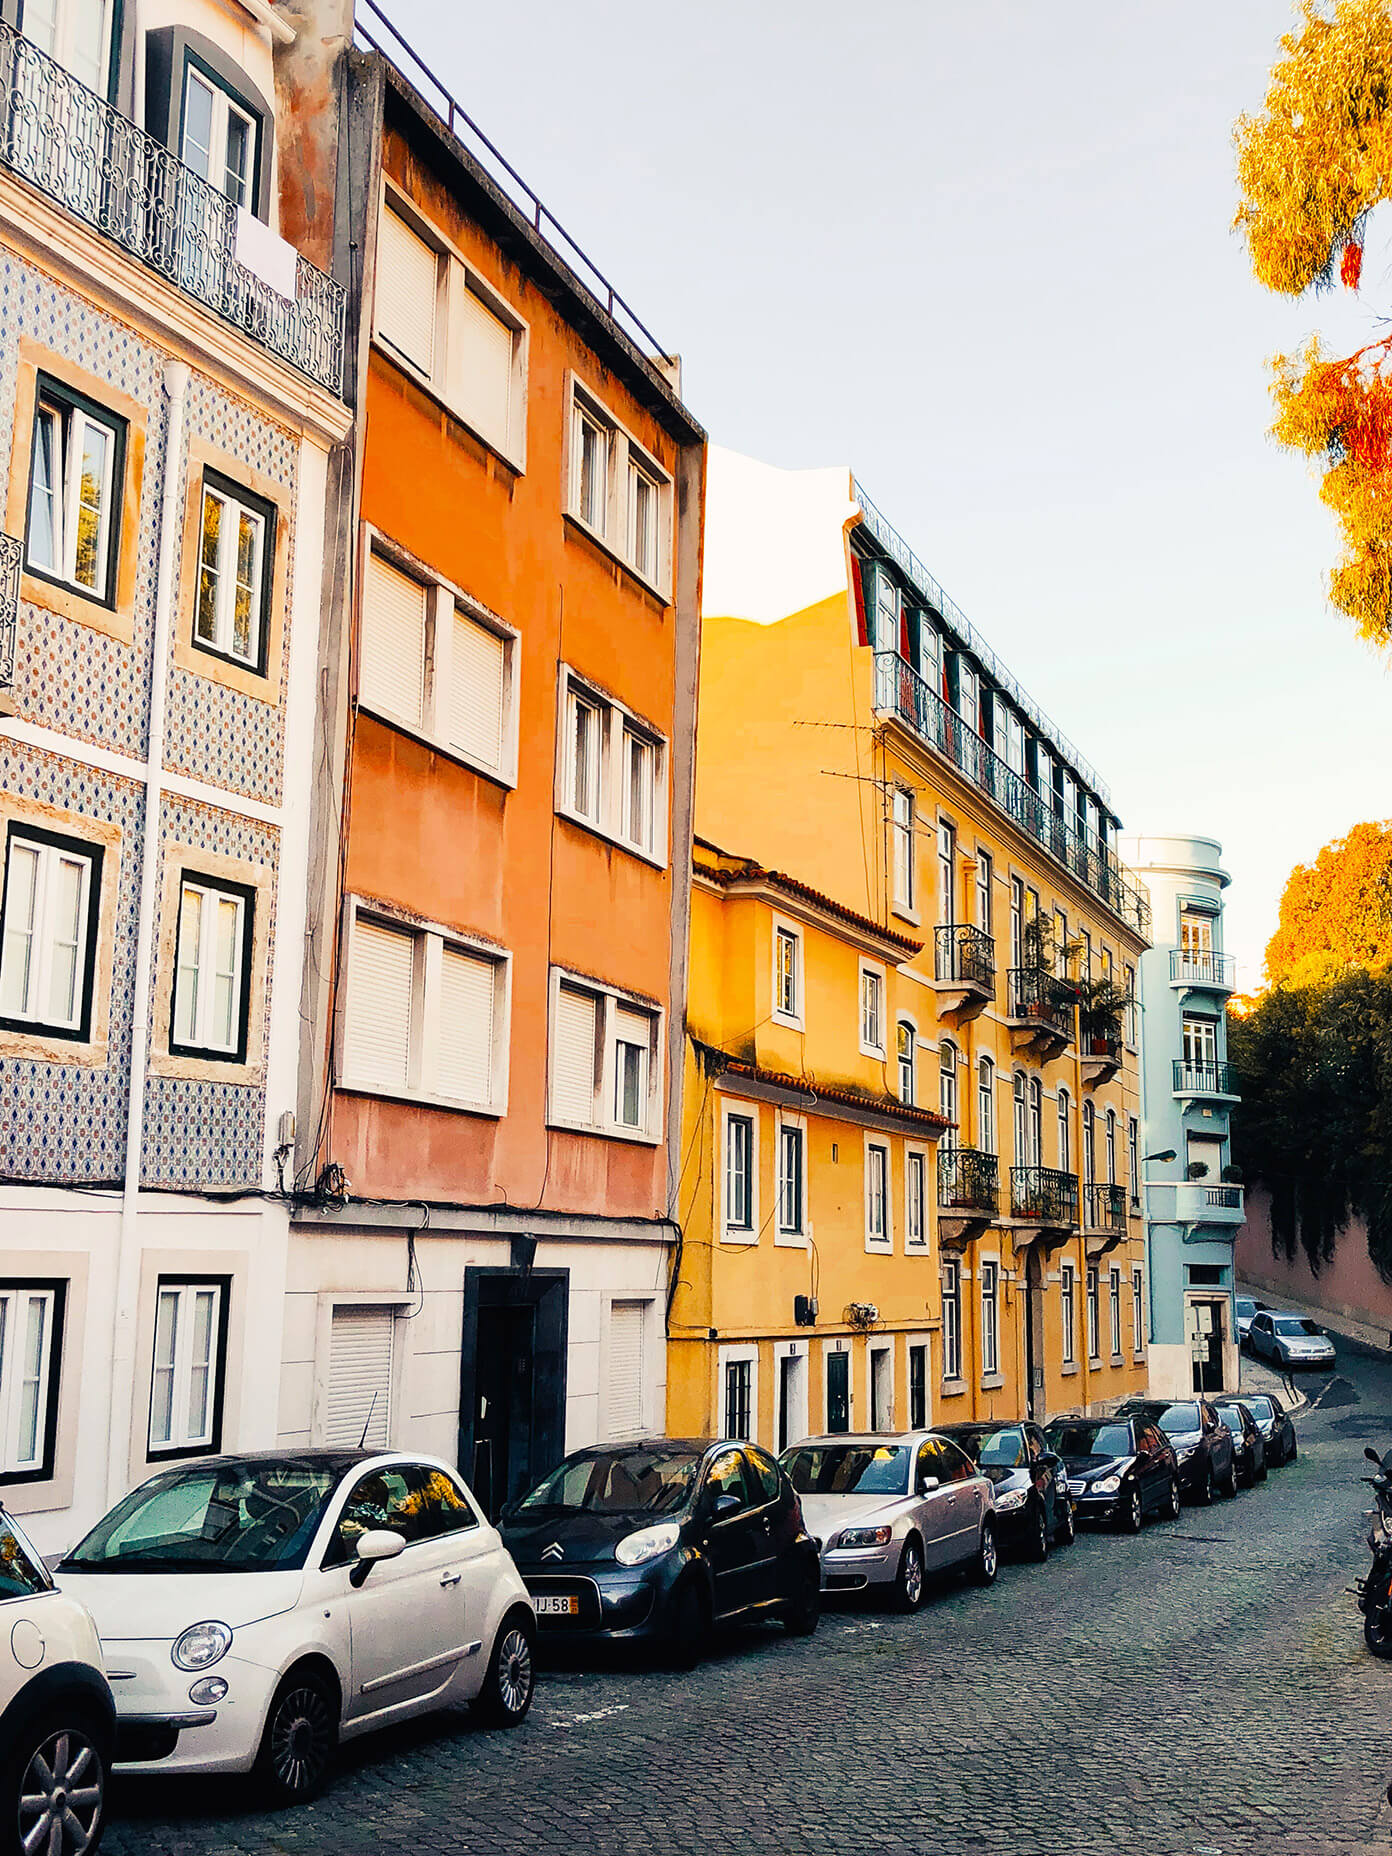 Colorful houses in Lisbon